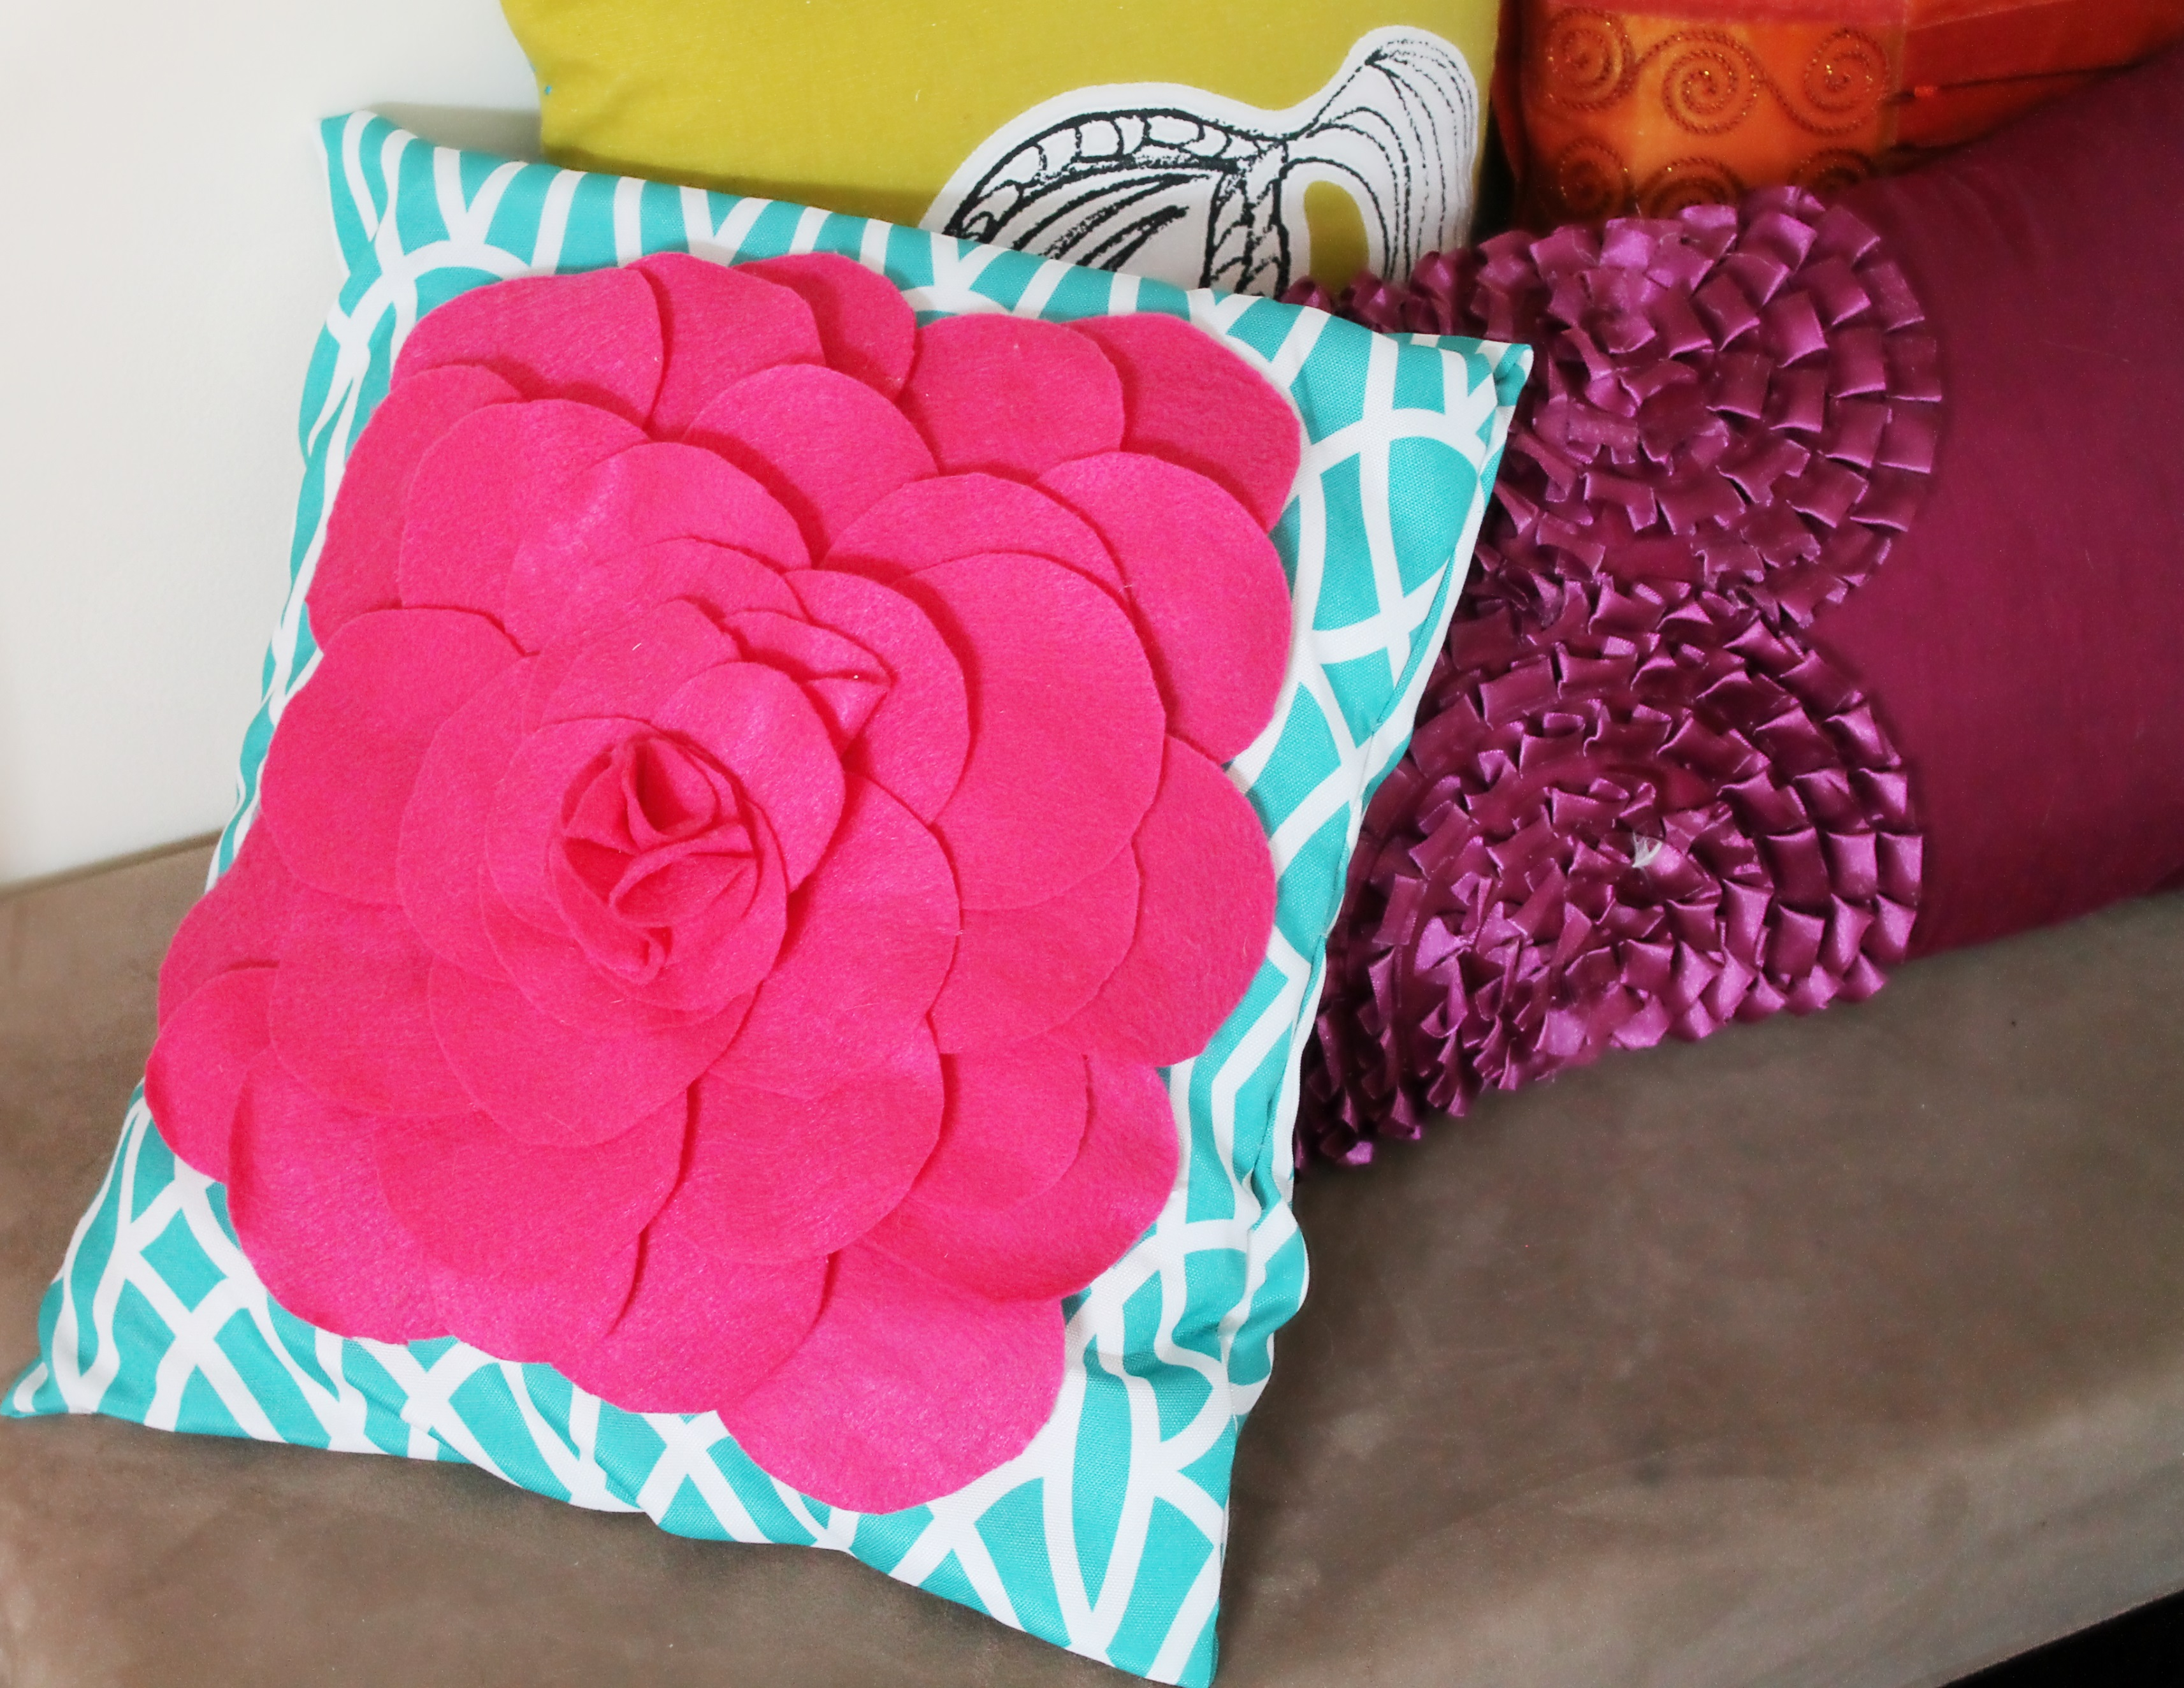 Layered rose petal no sew cover